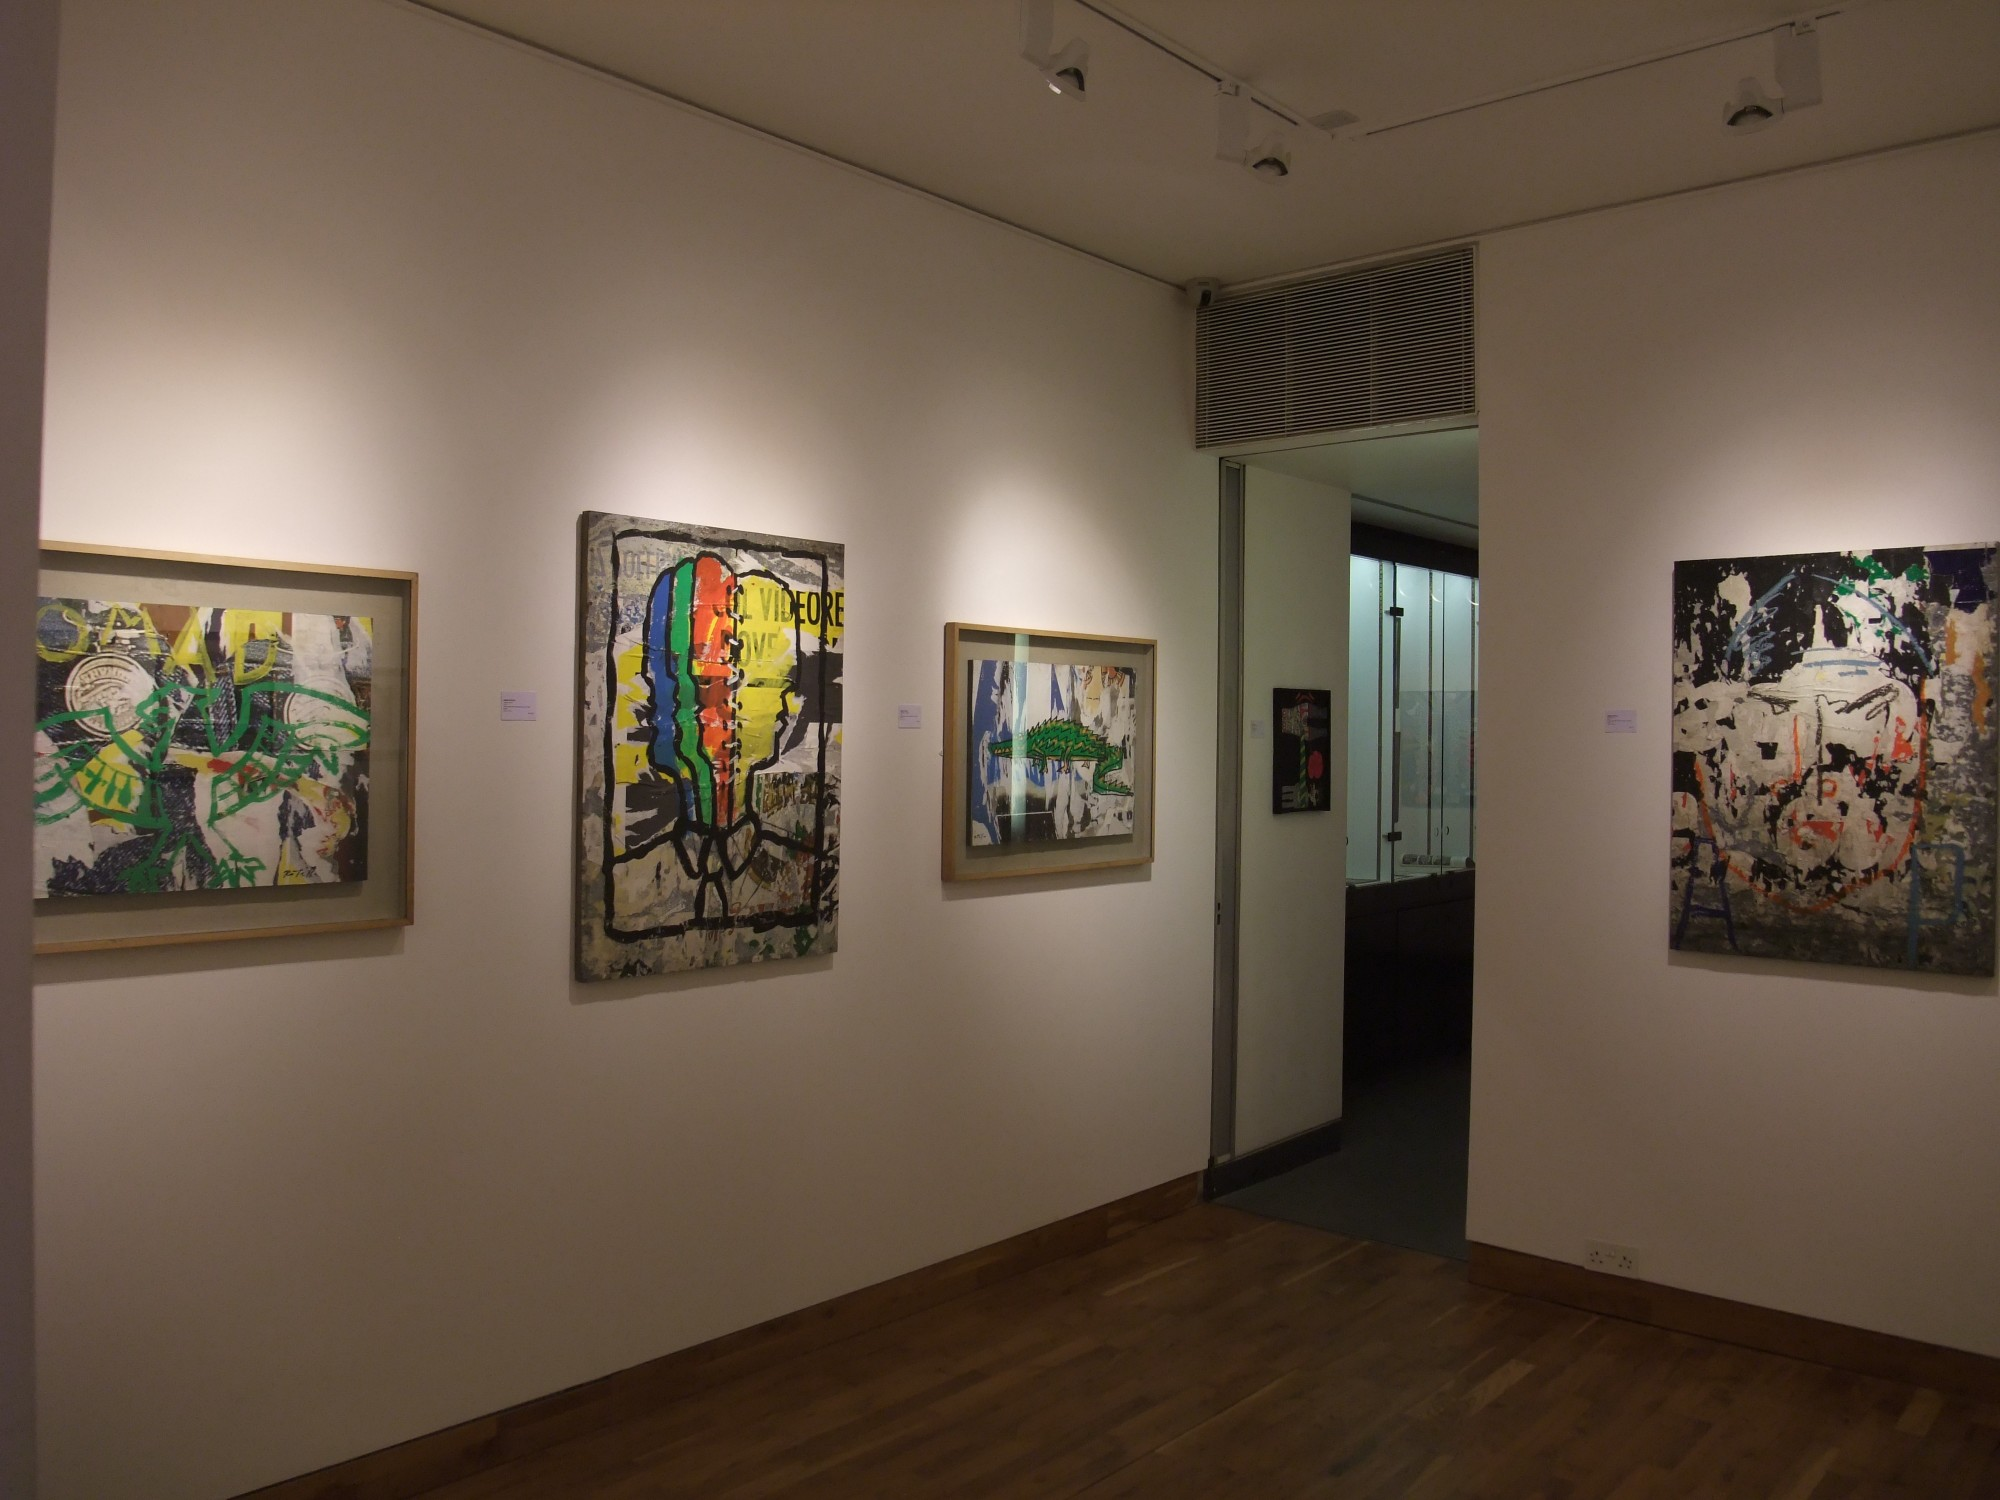 """<span class=""""link fancybox-details-link""""><a href=""""/exhibitions/97/works/image_standalone338/"""">View Detail Page</a></span><p>MIMMO ROTELLA & JACQUES VILLEGLÉ   22 SEP - 24 OCT 2008   Installation View</p>"""